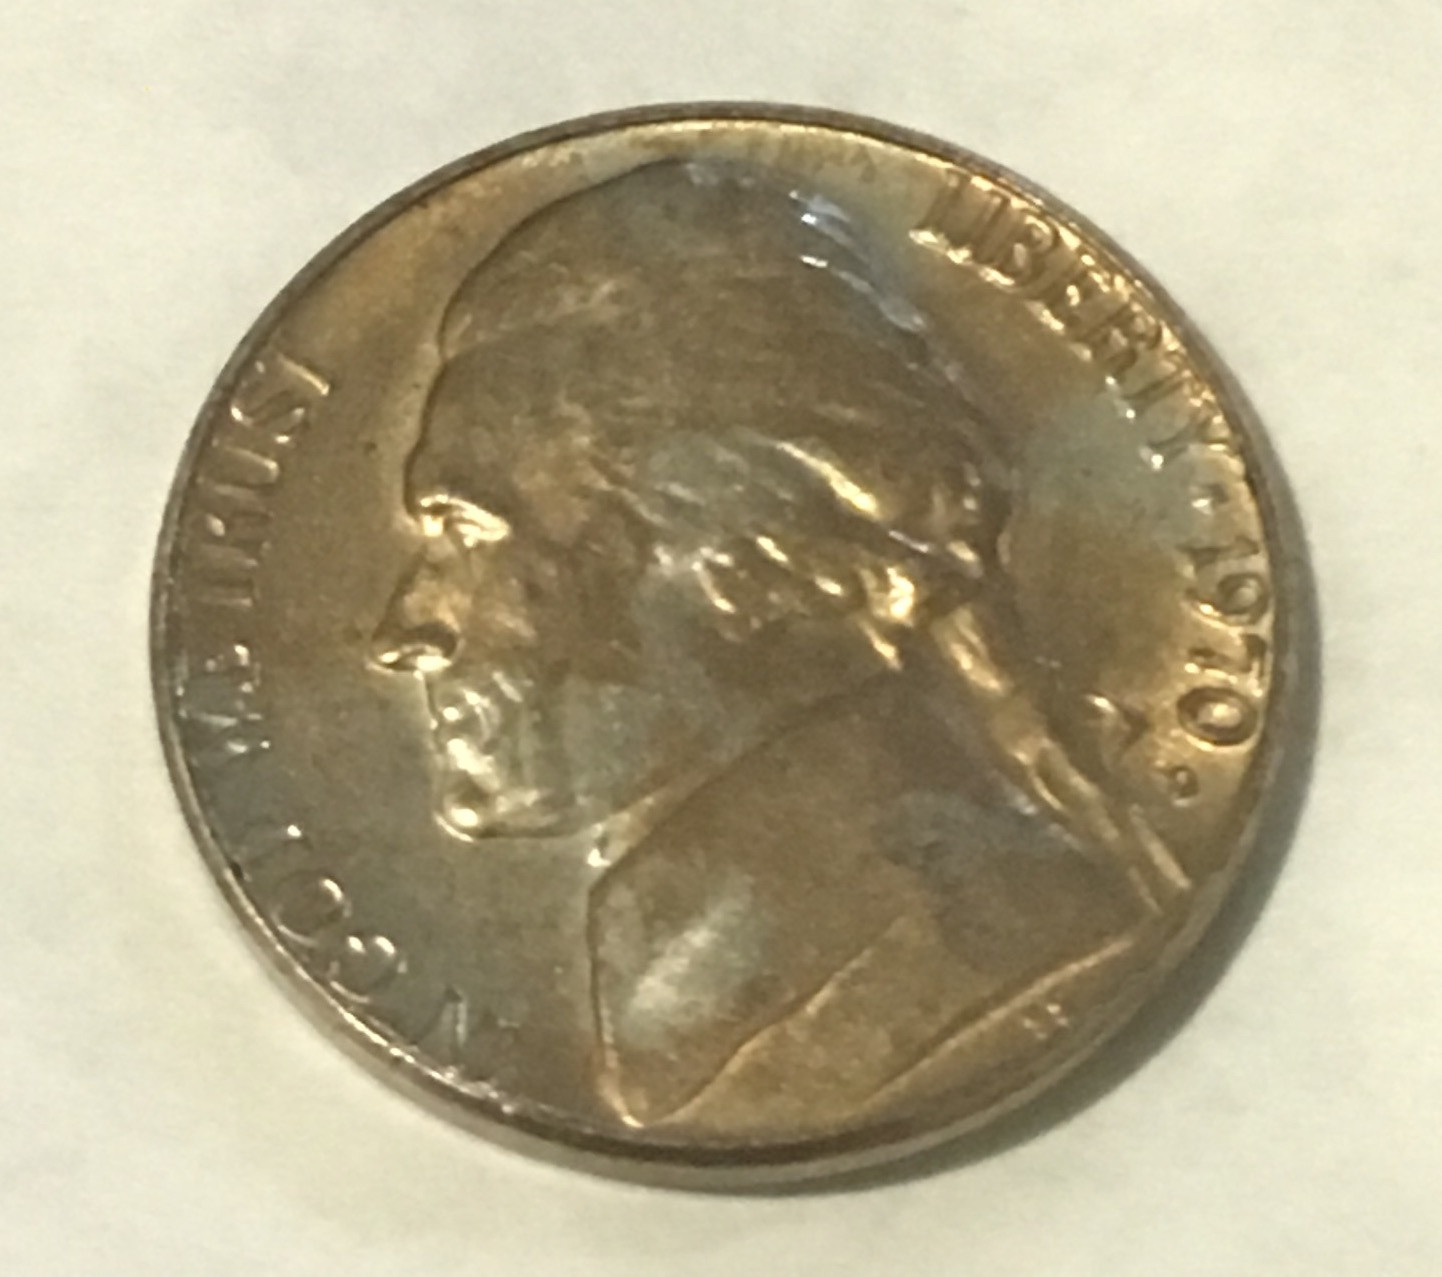 Wheat Pennies The Rarest & Most Valuable Wheat Cents